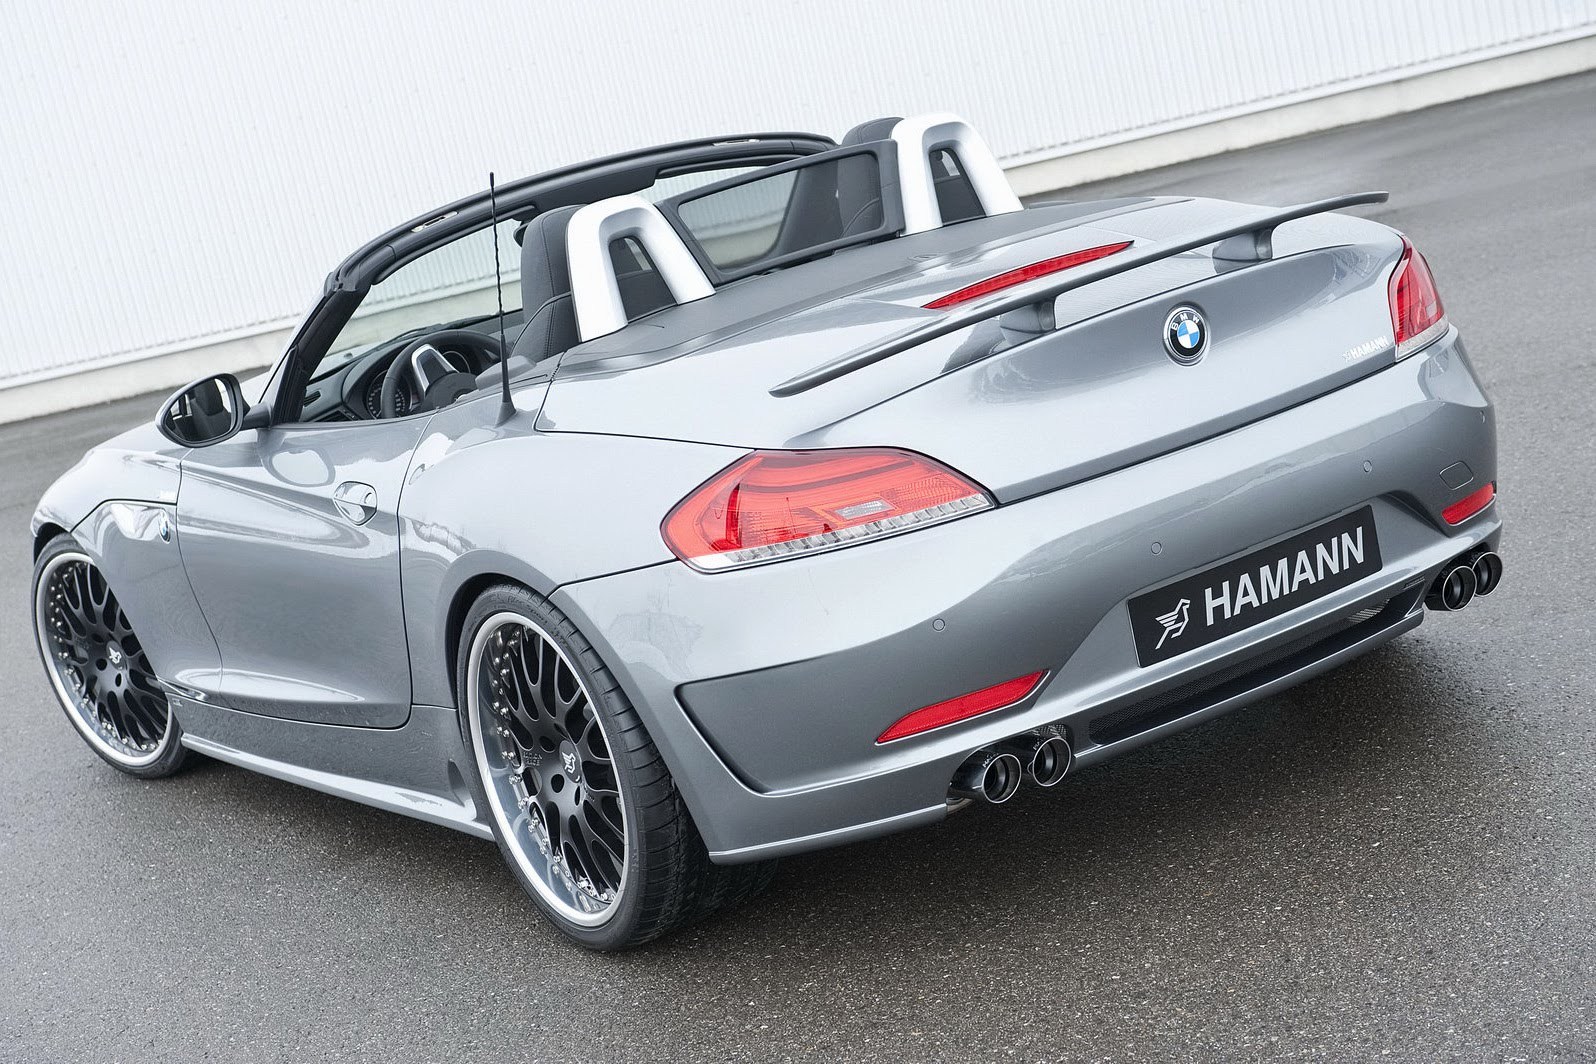 hamann builds a bmw z4 m roadster e89. Black Bedroom Furniture Sets. Home Design Ideas